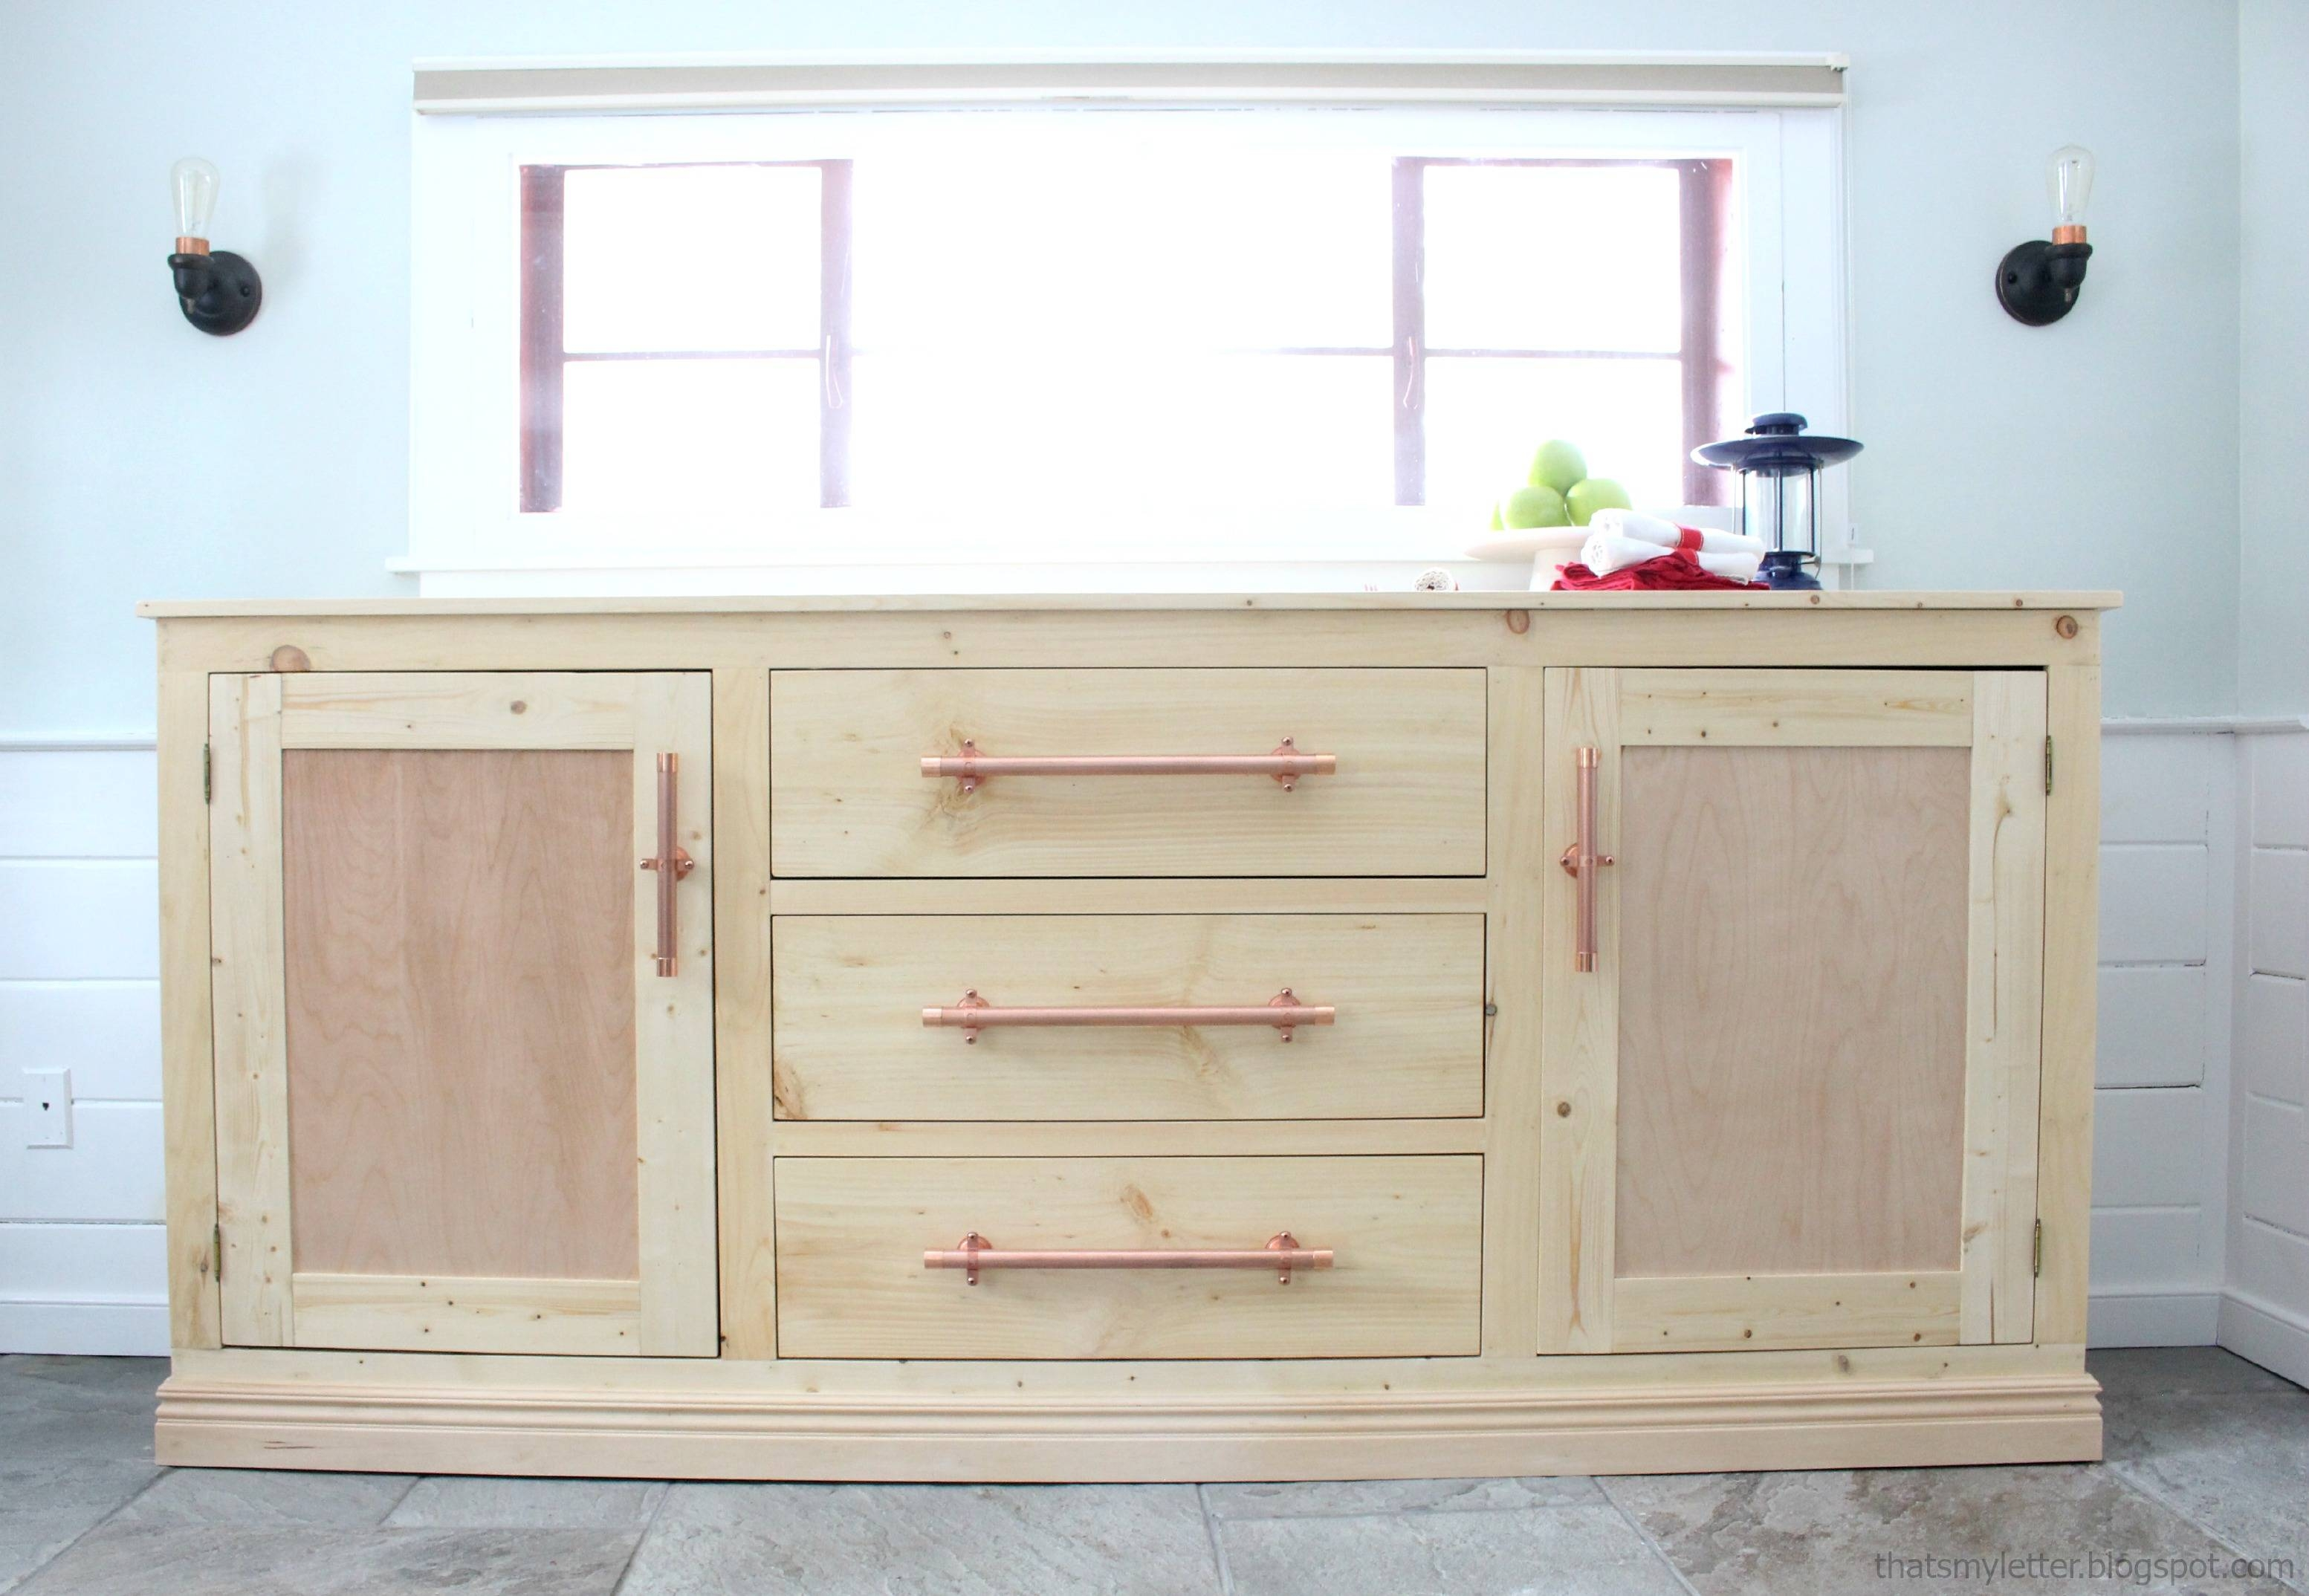 Ana White | Extra Long Buffet Cabinet - Diy Projects inside White and Wood Sideboards (Image 1 of 30)